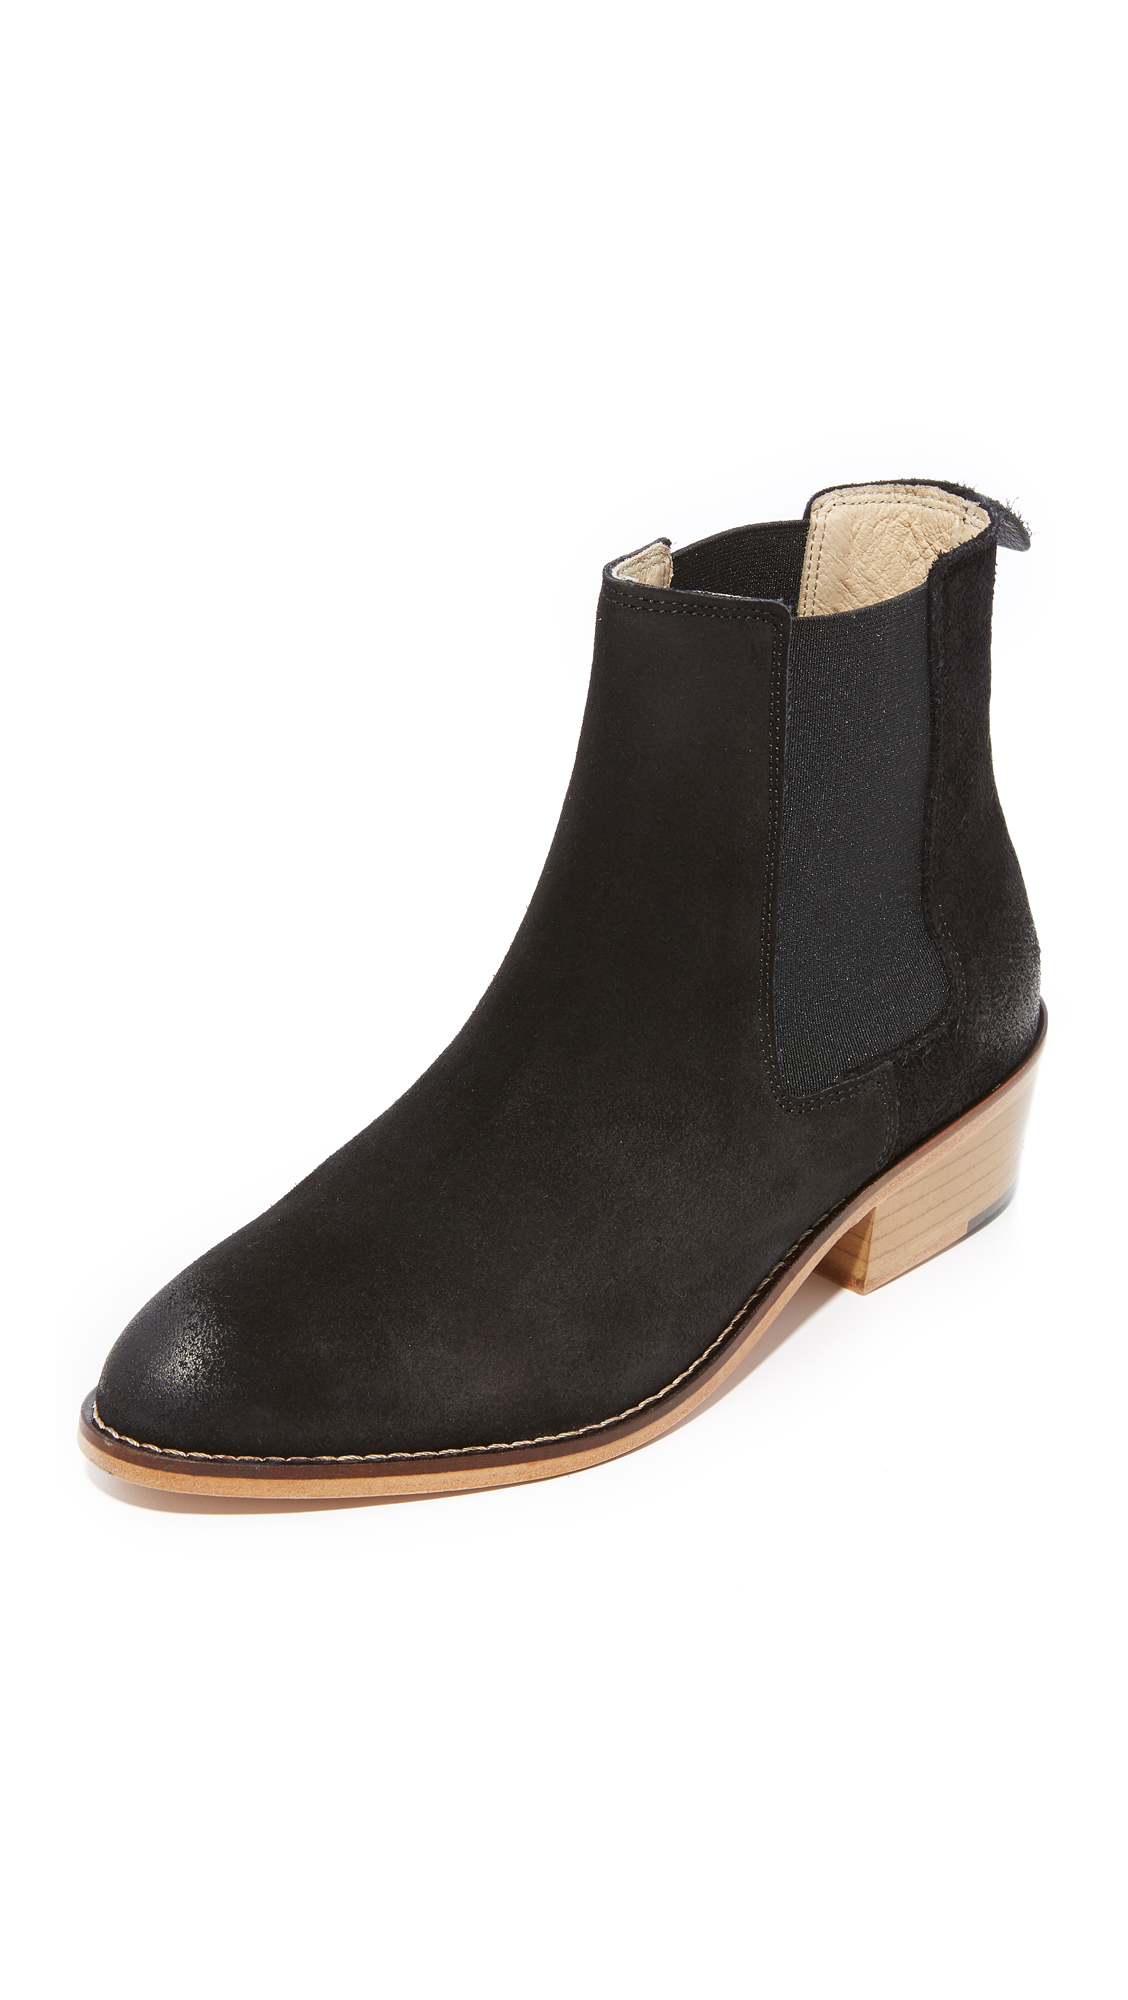 Matt Bernson Frisco Chelsea Booties - Black